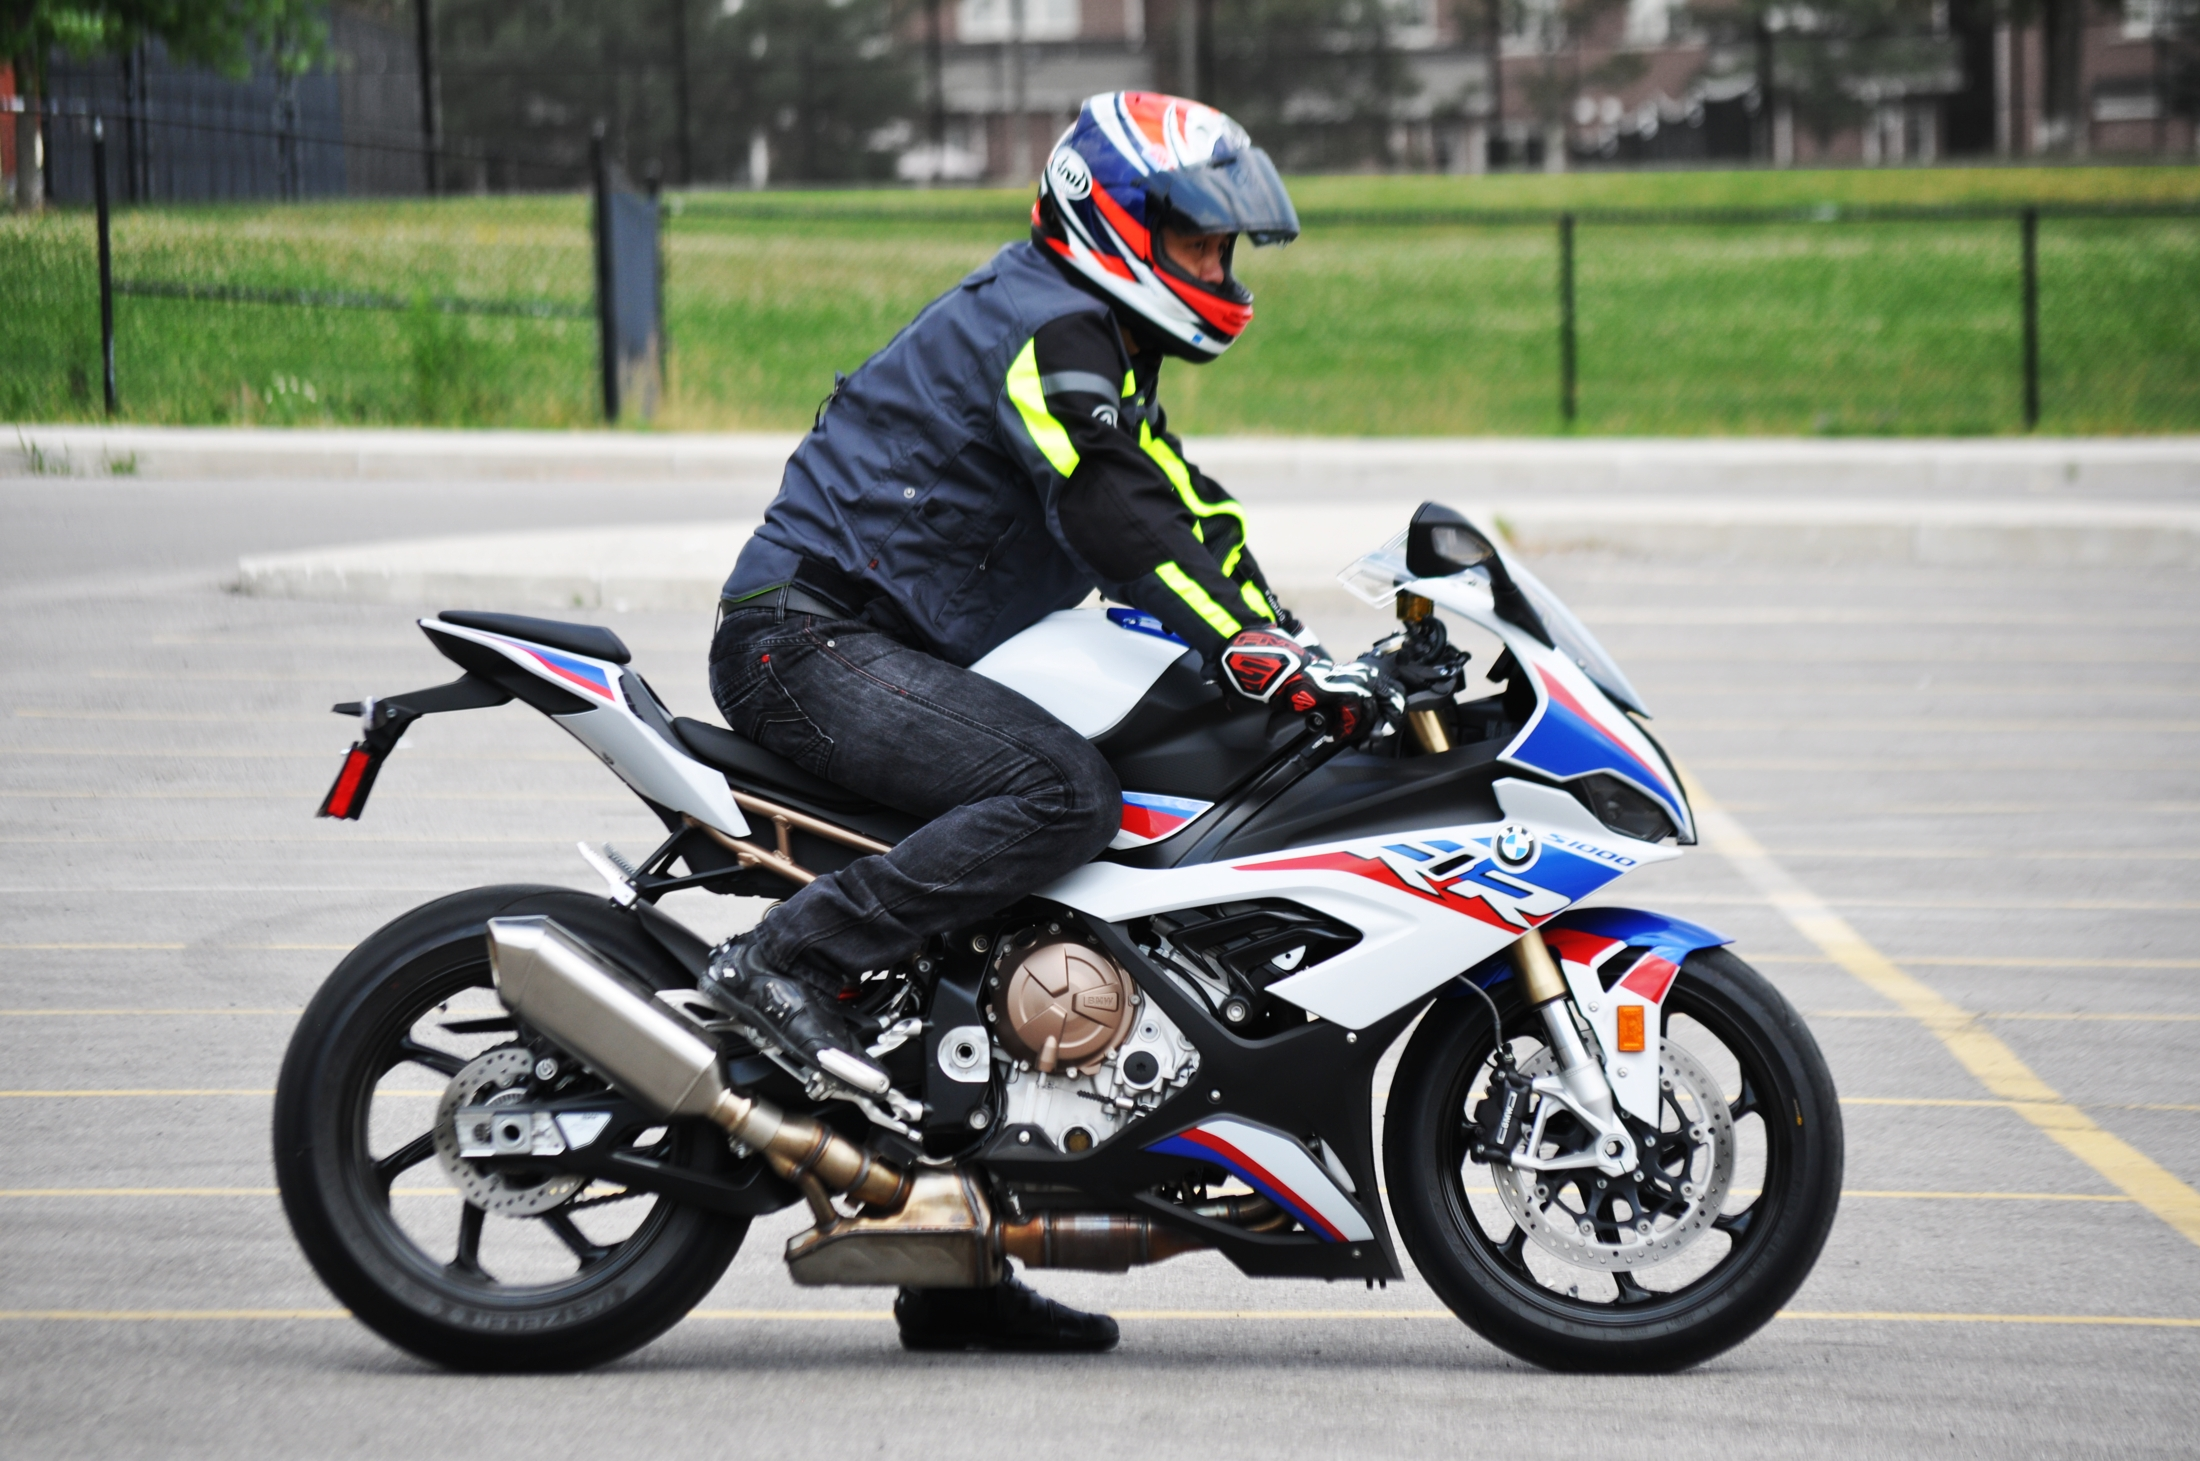 2020 BMW S1000RR Price in India, Colors, Specifications